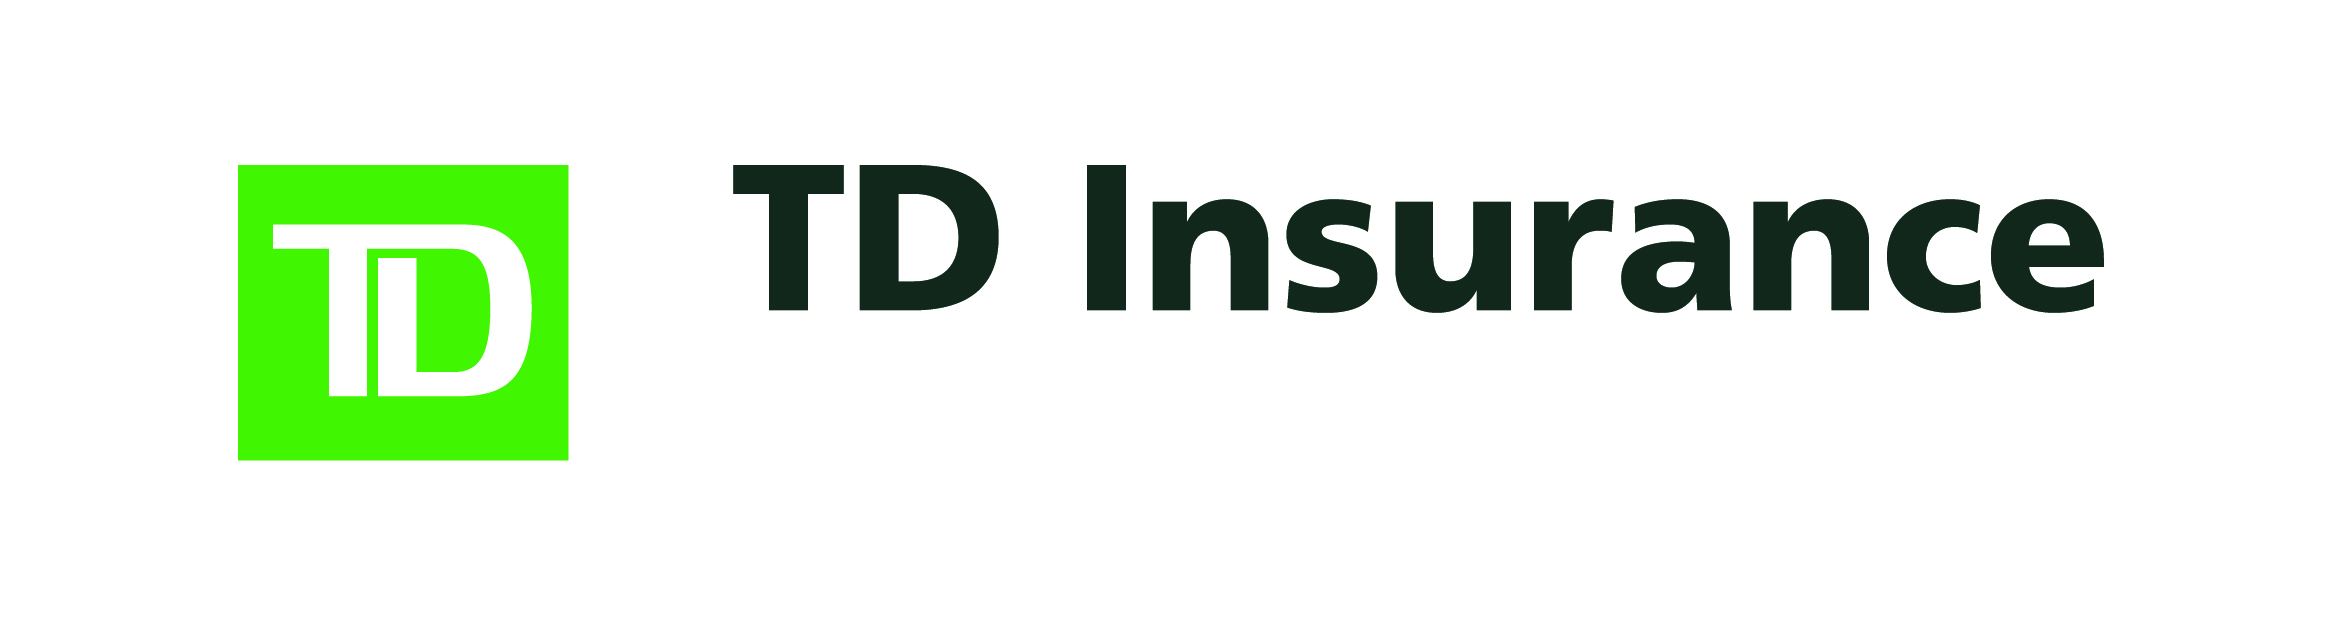 TD Insurance alumni program partner